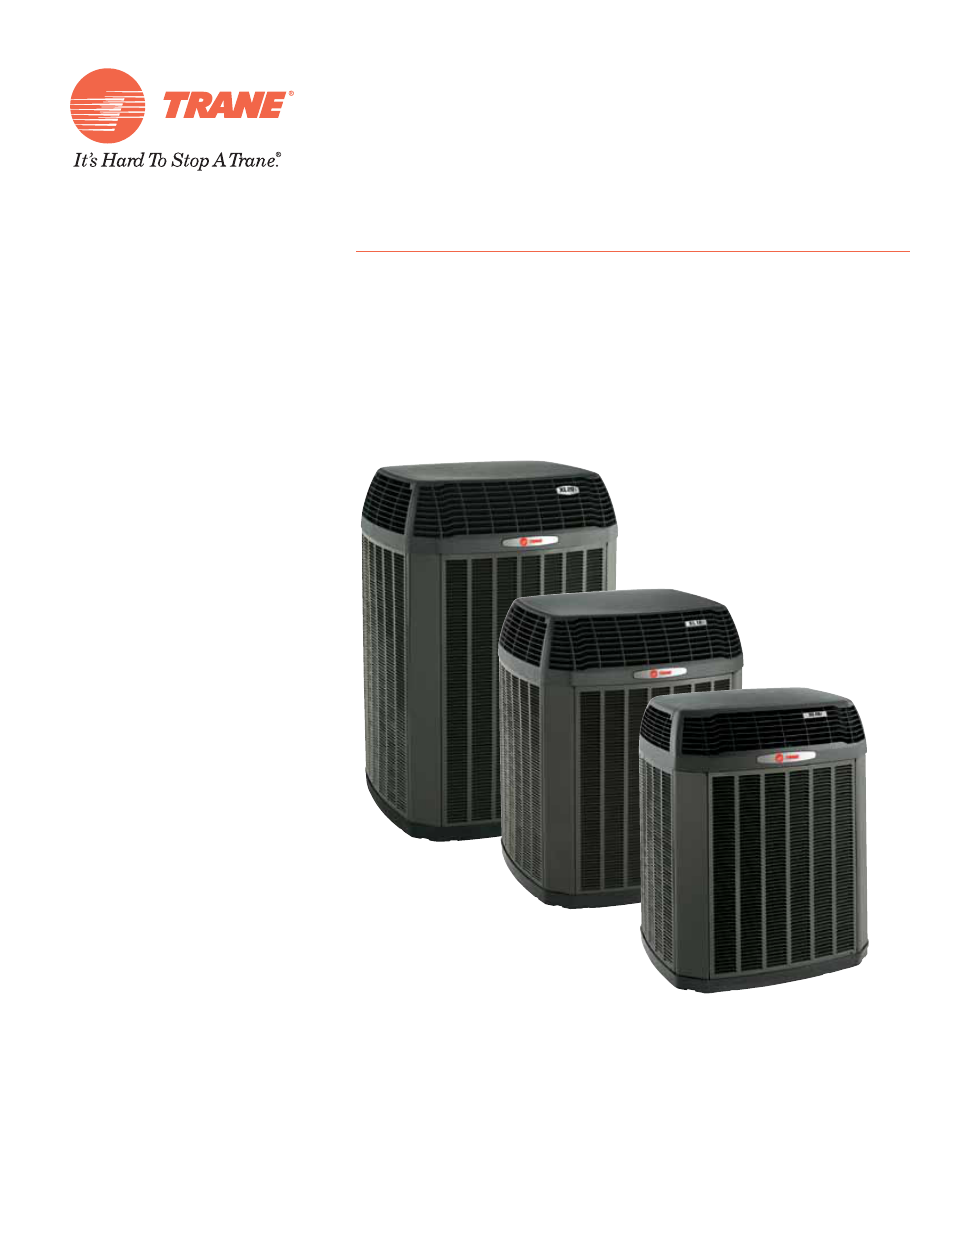 Trane Xl 19 Owners Manual